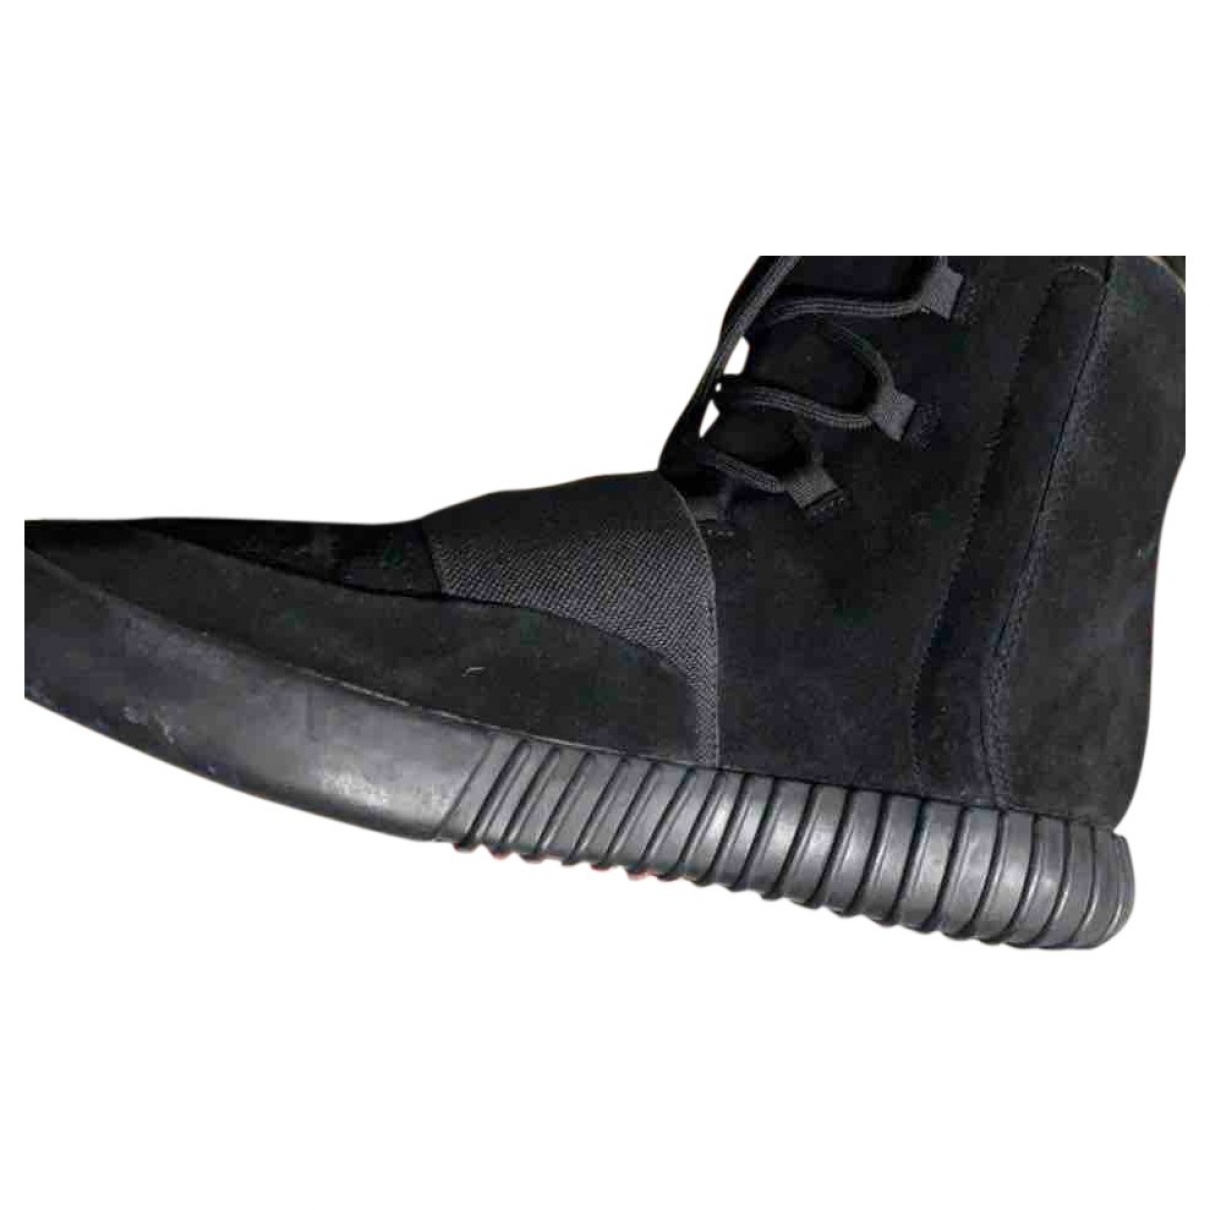 Yeezy X Adidas Boost 750  Black Suede Trainers for Men 47 EU